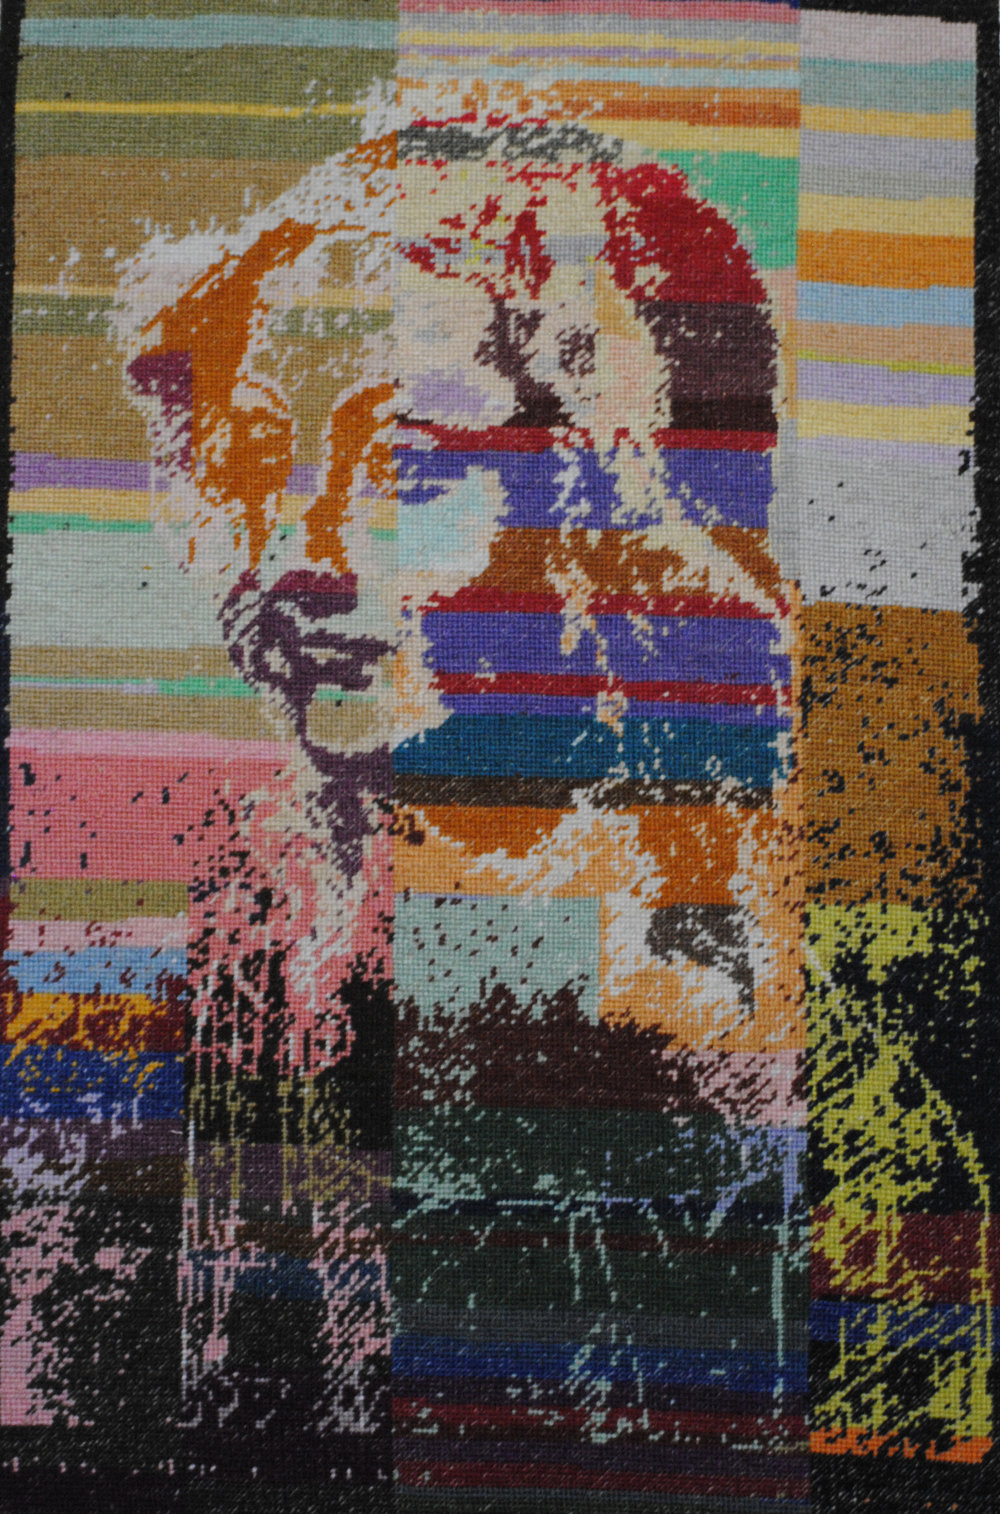 Holly Day's needlepoint is a rendering of one of Leonardo de Vinci's sketches. It shows the head and shoulders of a young man with long, loose hair. The outline and shadows are done in darker colors.